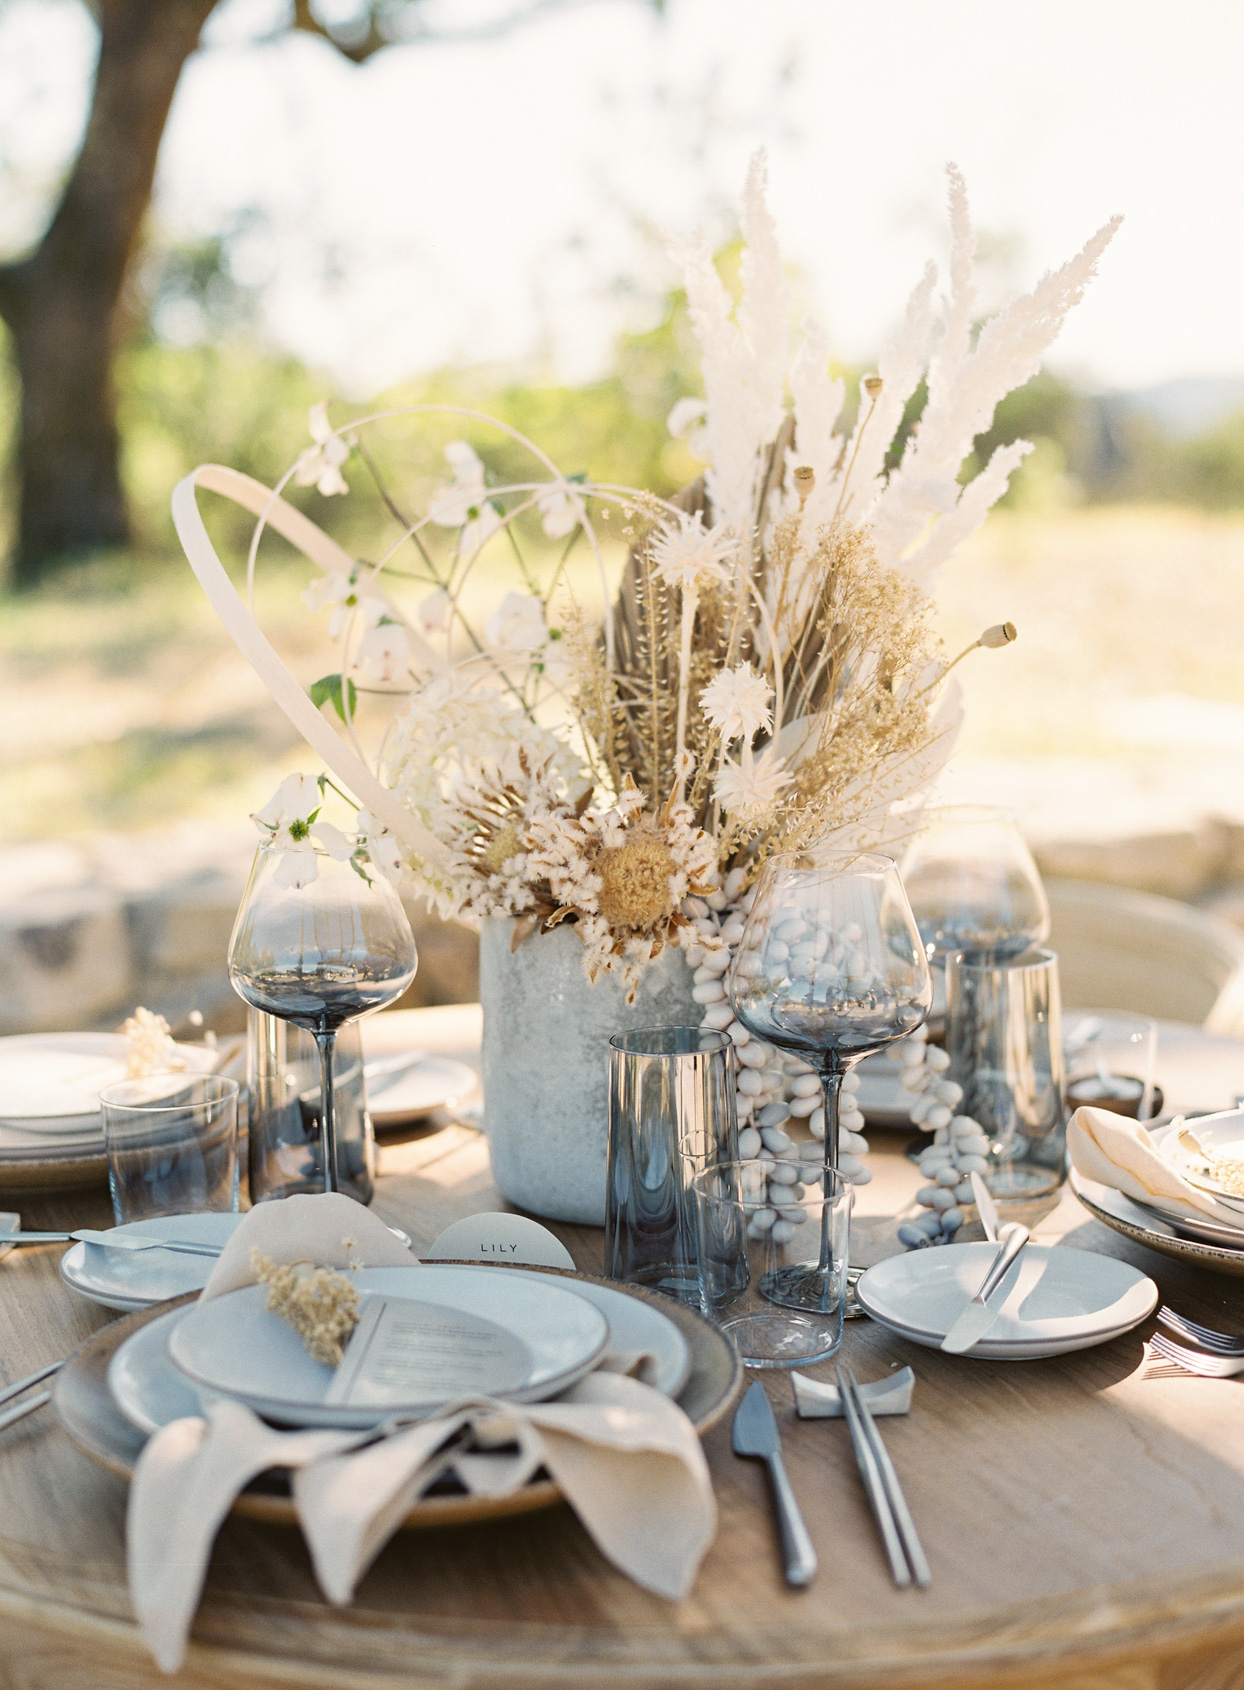 elegant modern gray, brown, and white place setting